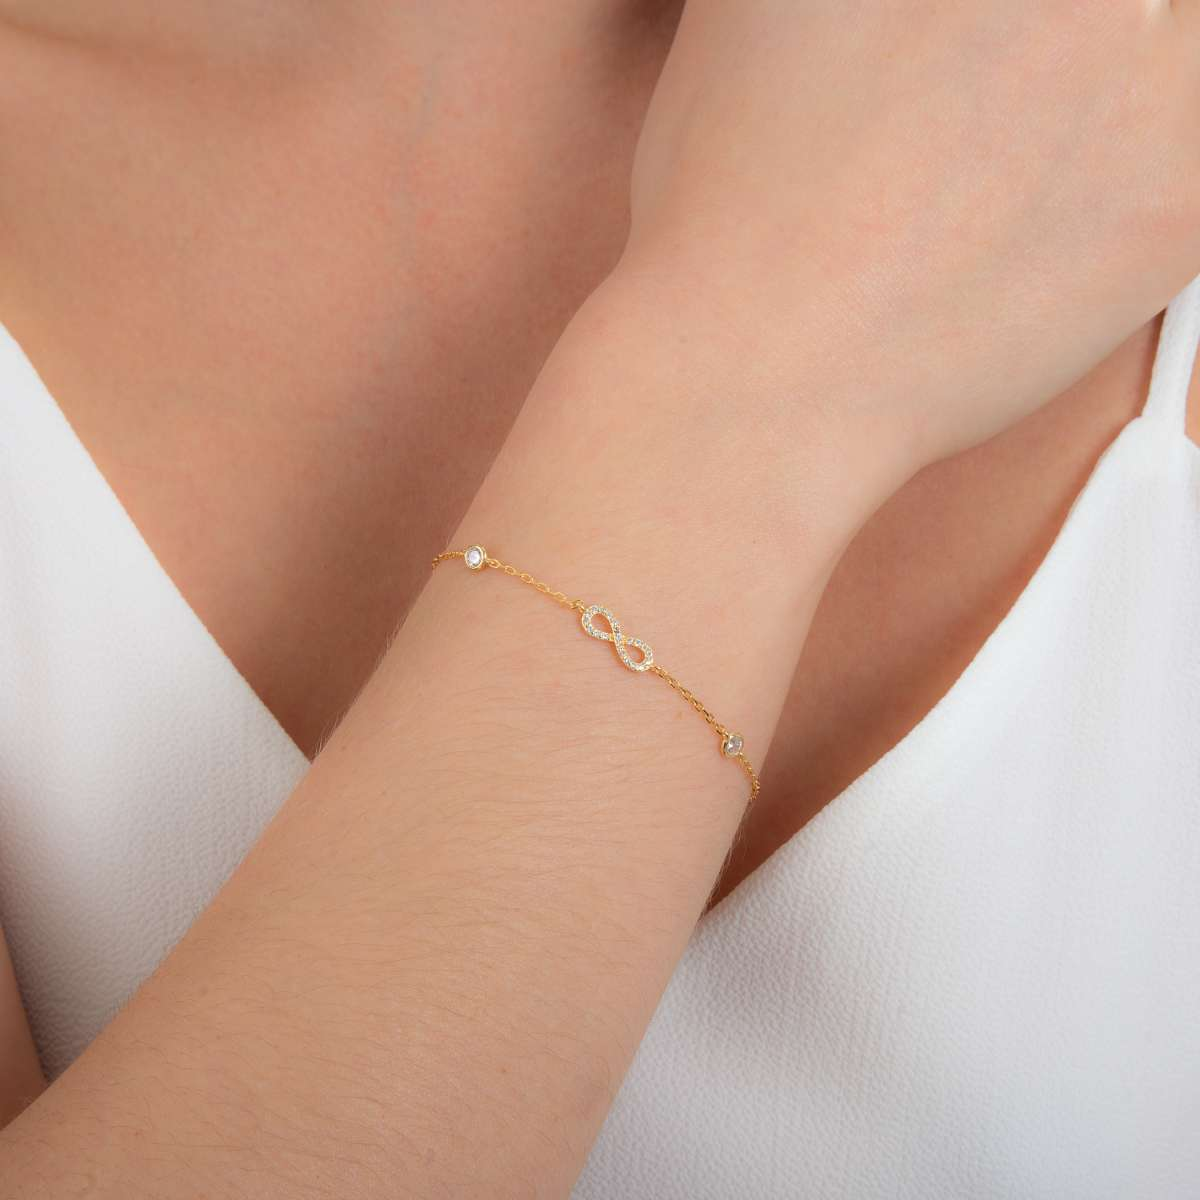 Alterative image for Yellow Gold Plated Fine Sterling Silver Infinity & Round Clear CZ Adjustable Bracelet